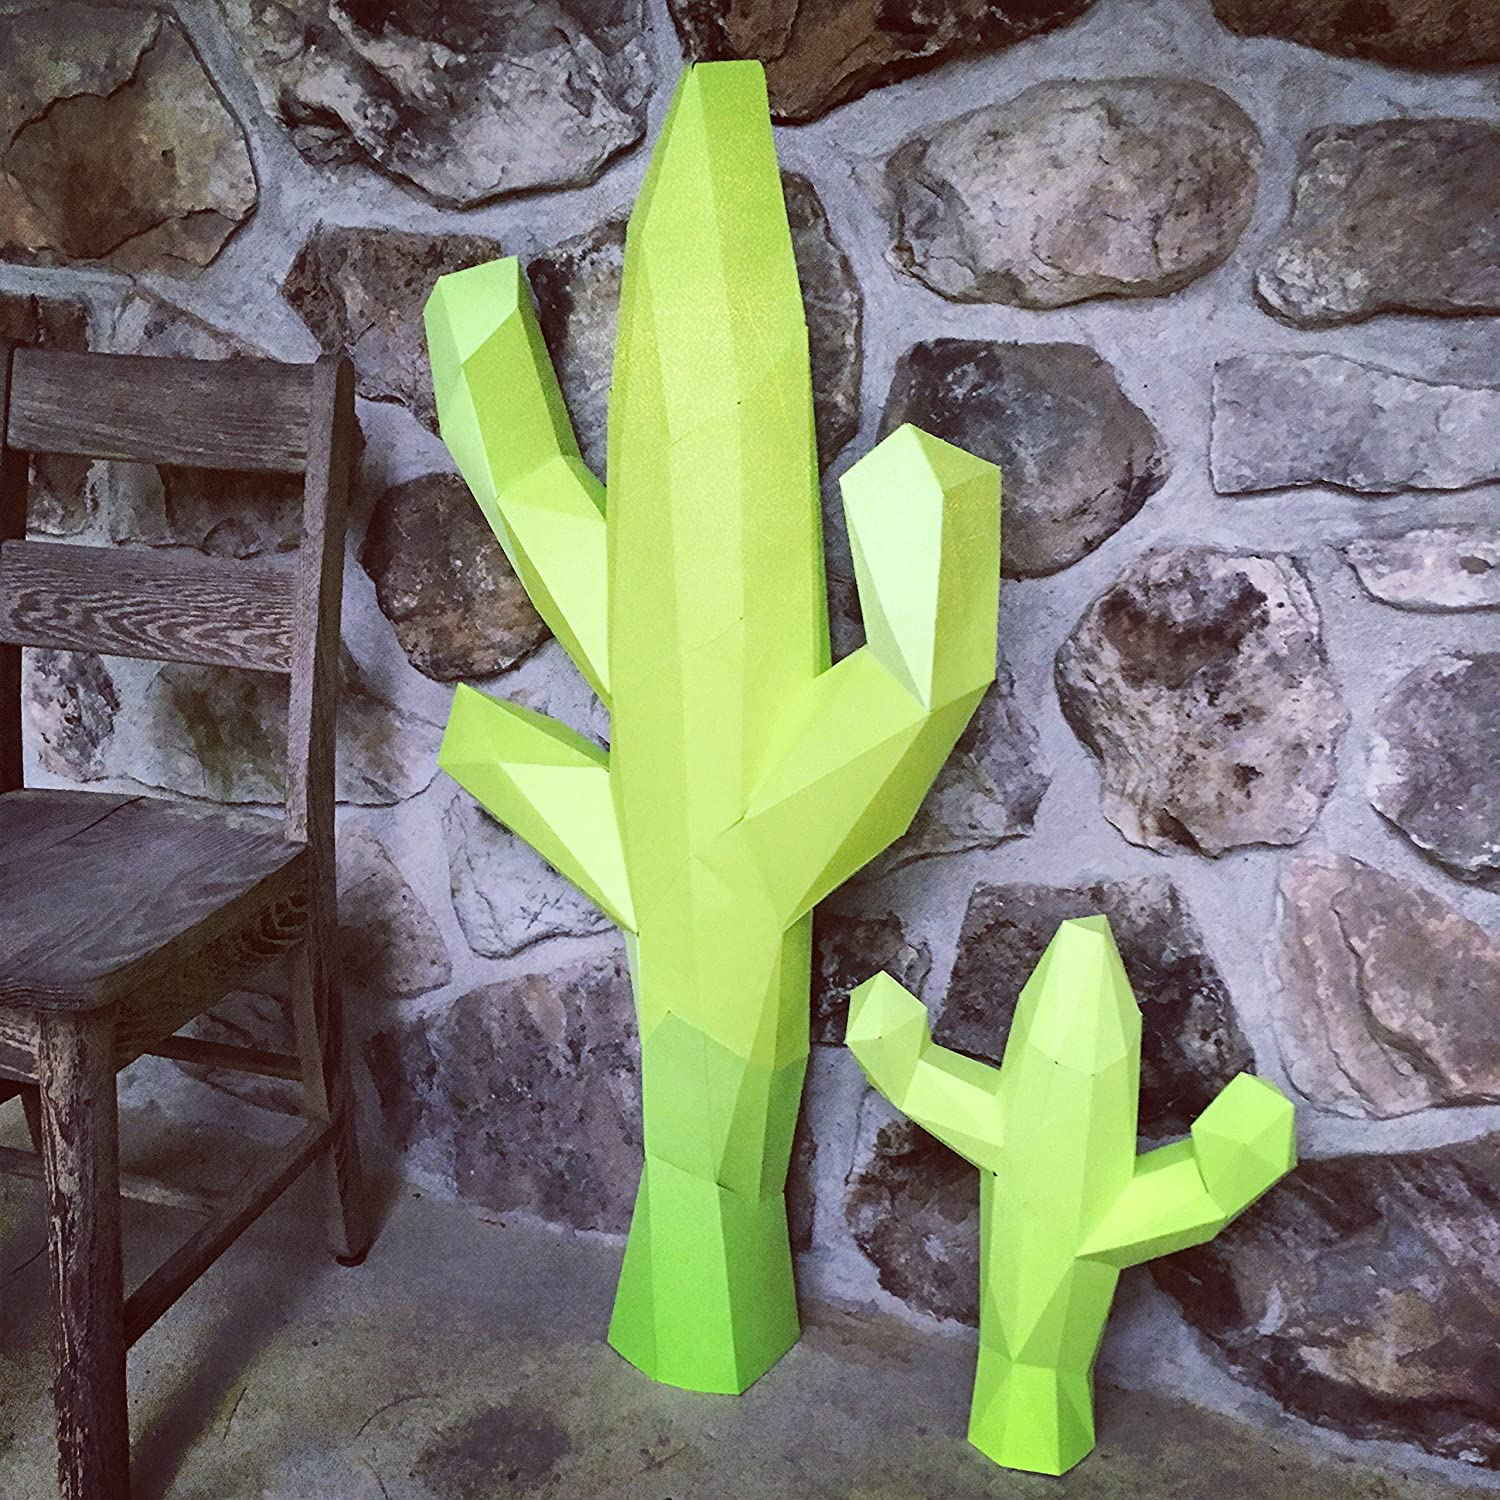 Cactus 3d papercraft KIT. Kit contains card stock paper template for this DIY (do it yourself) paper sculpture.